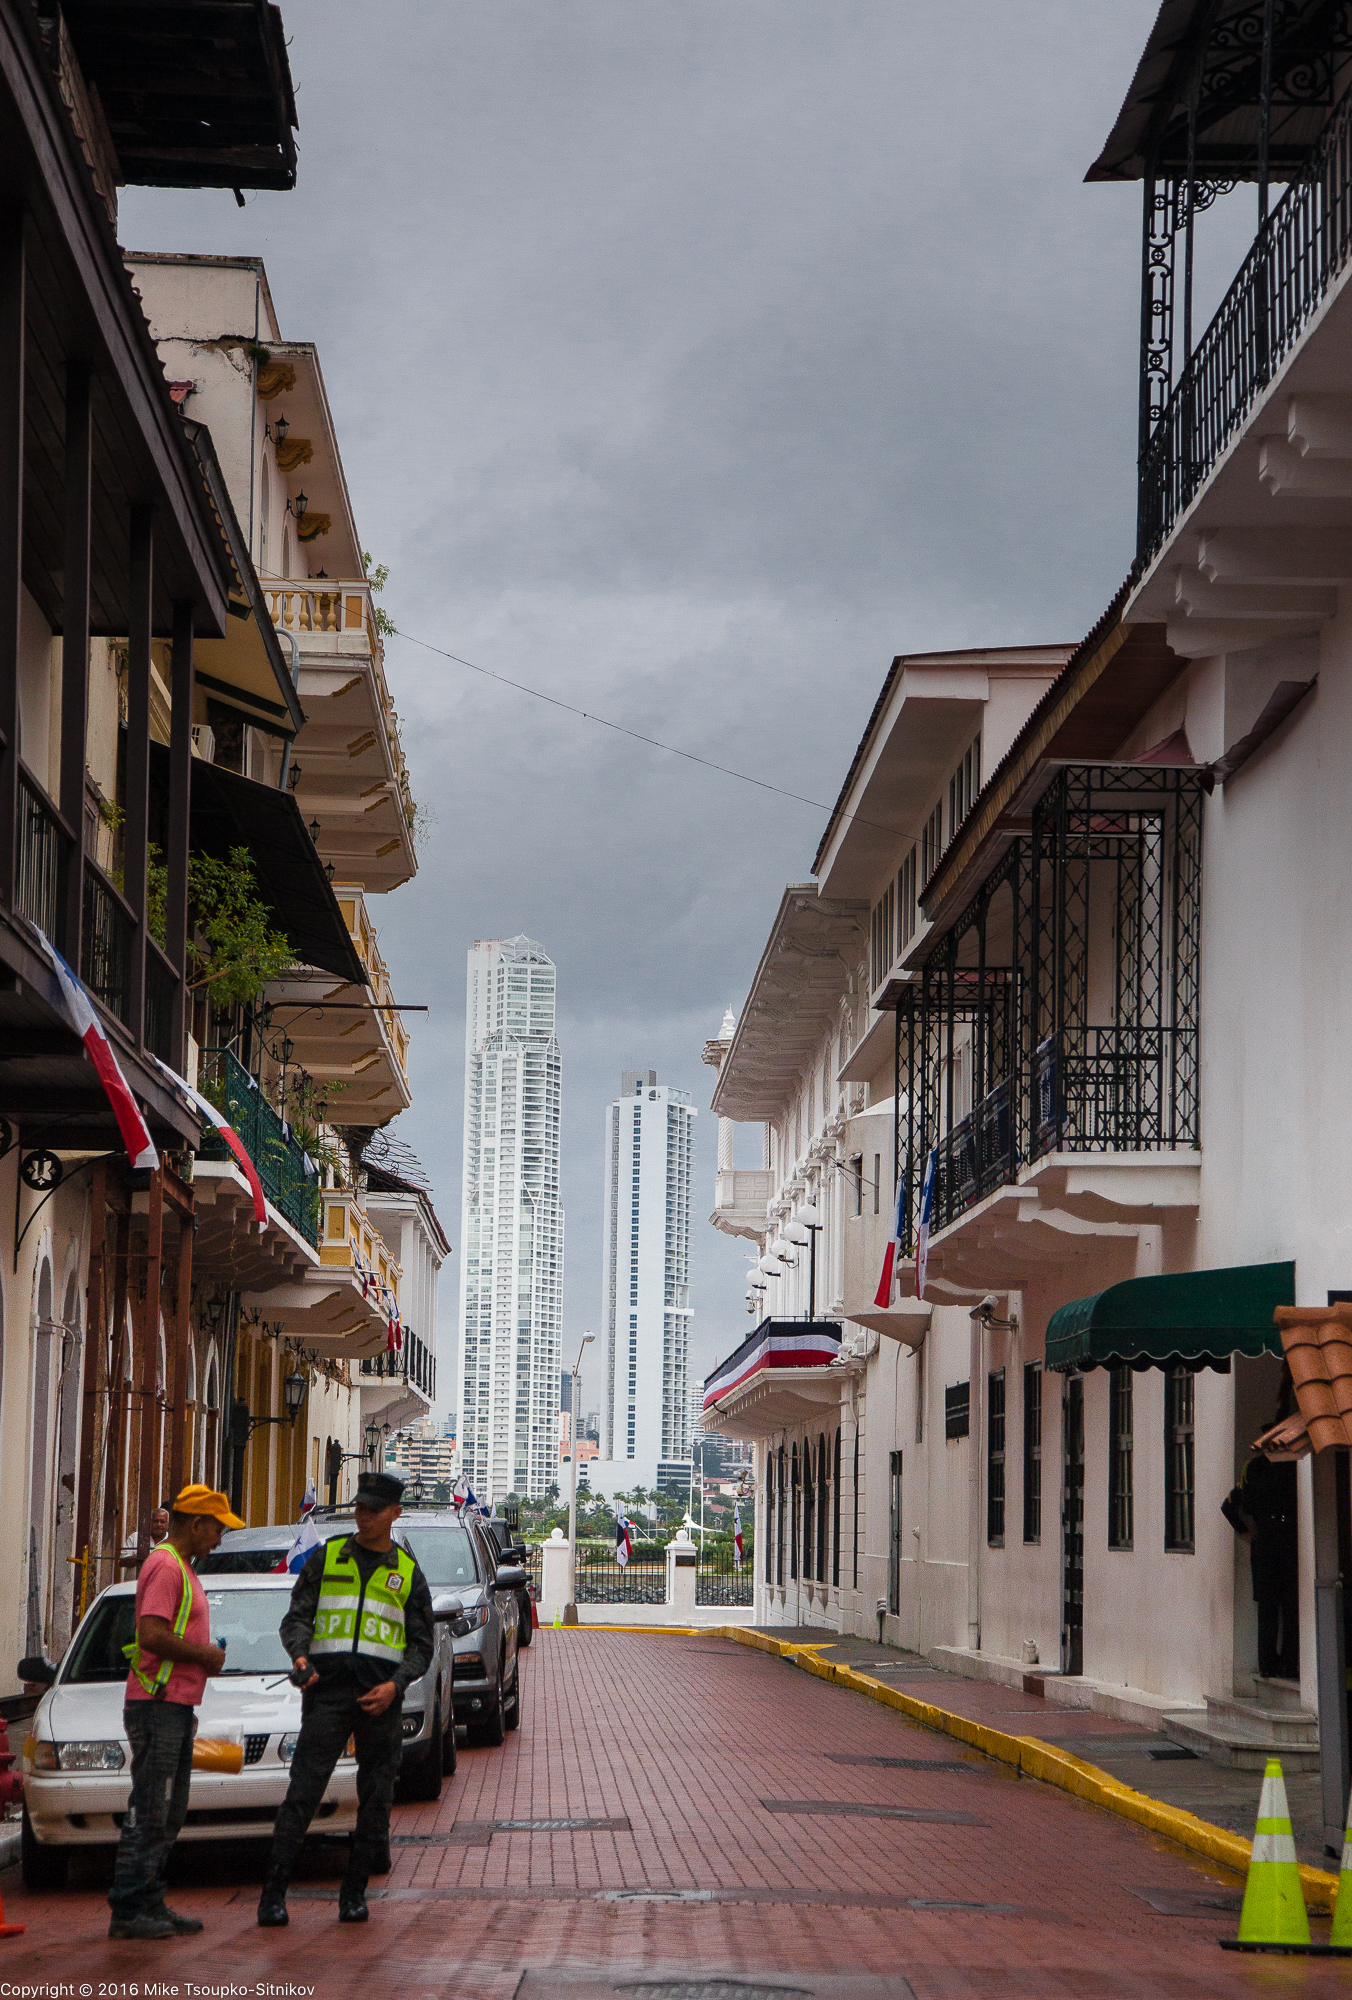 Panama City: a view from the Old Town into the New Town